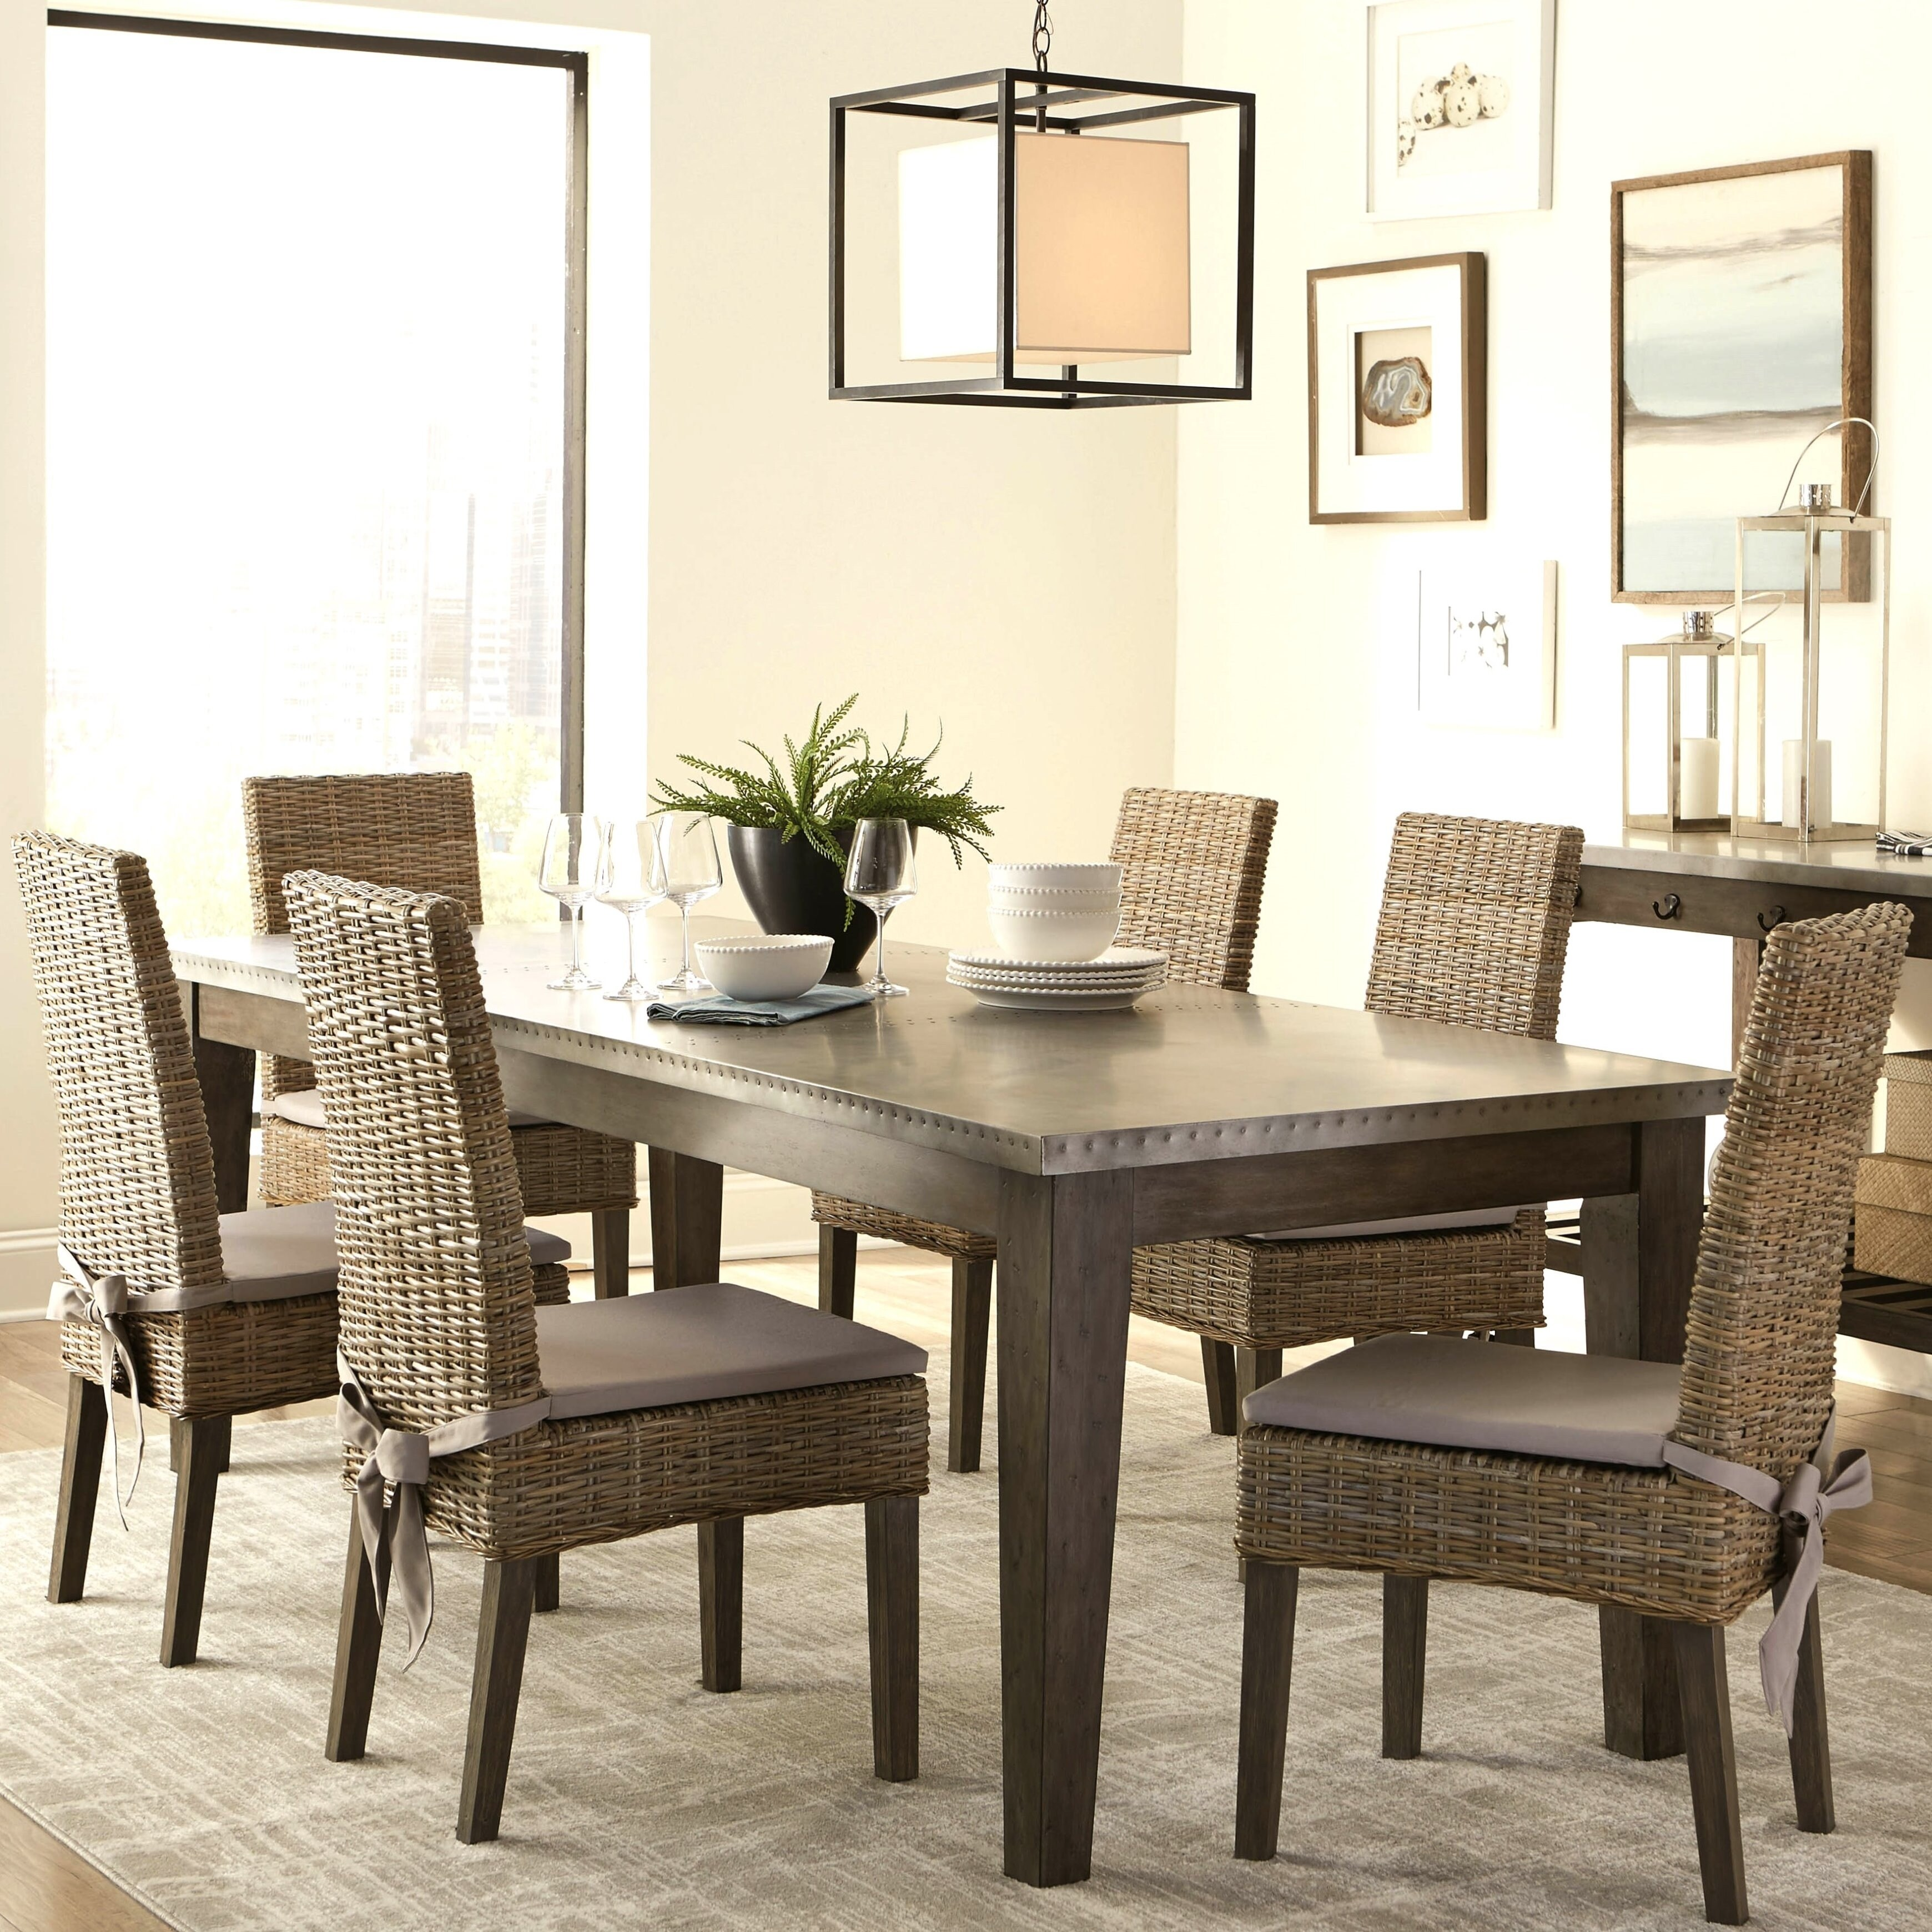 Rattan Chairs Rustic Industrial Design Metal Top Dining Set With Rattan Chairs